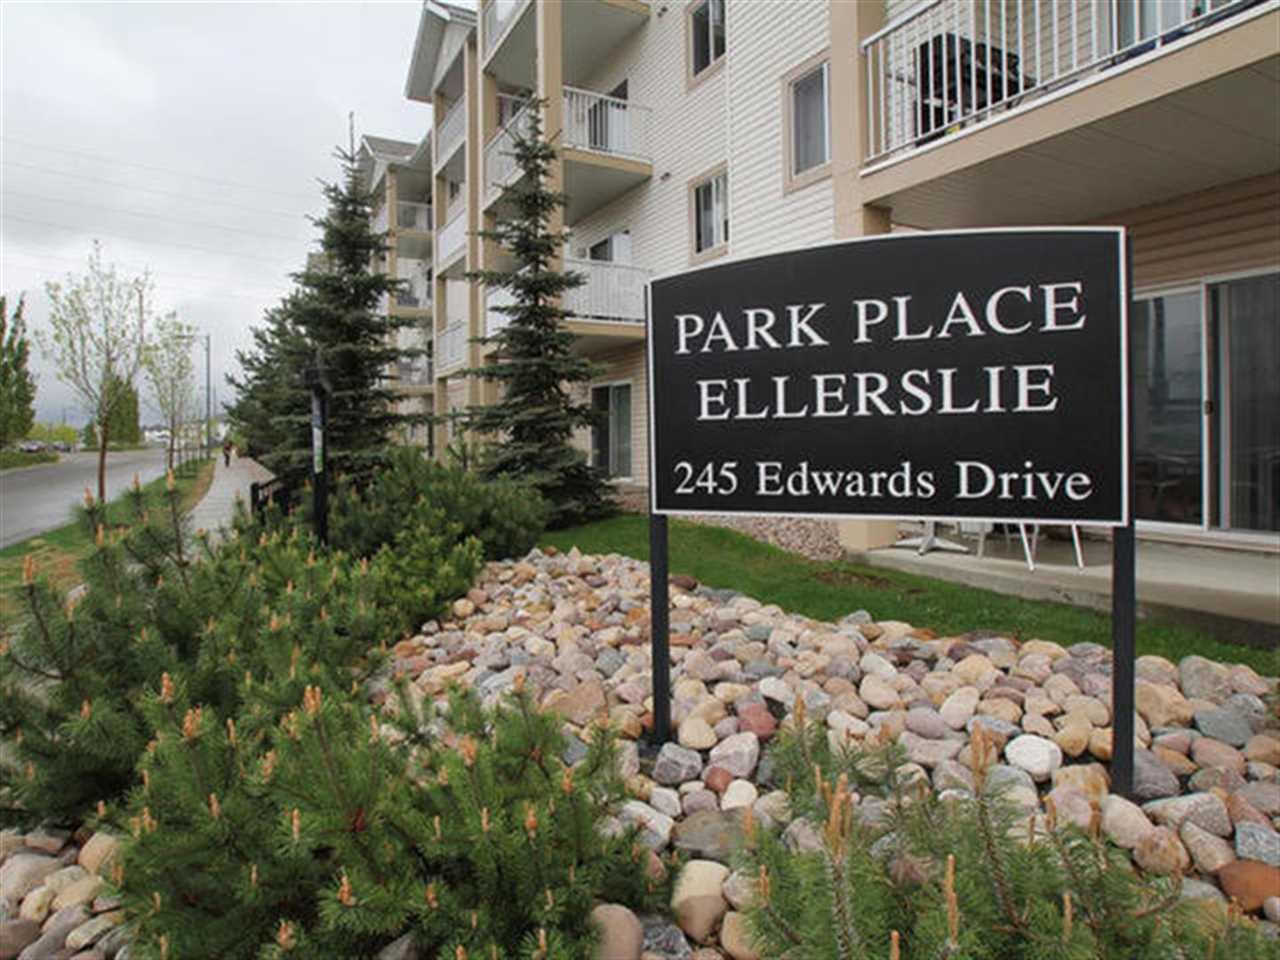 Perfect buy with the best priced unit in Park Place Ellerslie! This excellent complex has been well maintained, and is situated perfectly near all amenities including schools, shopping, public transportation, and just a quick trip away from the Edmonton International Airport and Mall. Enjoy maintenance free living and not having to worry about grass or snow with this 1 bedroom, 1 bathroom, ground floor condo, that has a parking stall for your convenience. This unit is perfect for a student, professional, or someone who is always on the go with a spacious floor plan for them to enjoy working/studying in, or some-where to call home while they are out and about travelling the world. Enjoy a modern kitchen, in-suite laundry, visitor parking, and patio to lounge on in the summer months. Do not miss out.